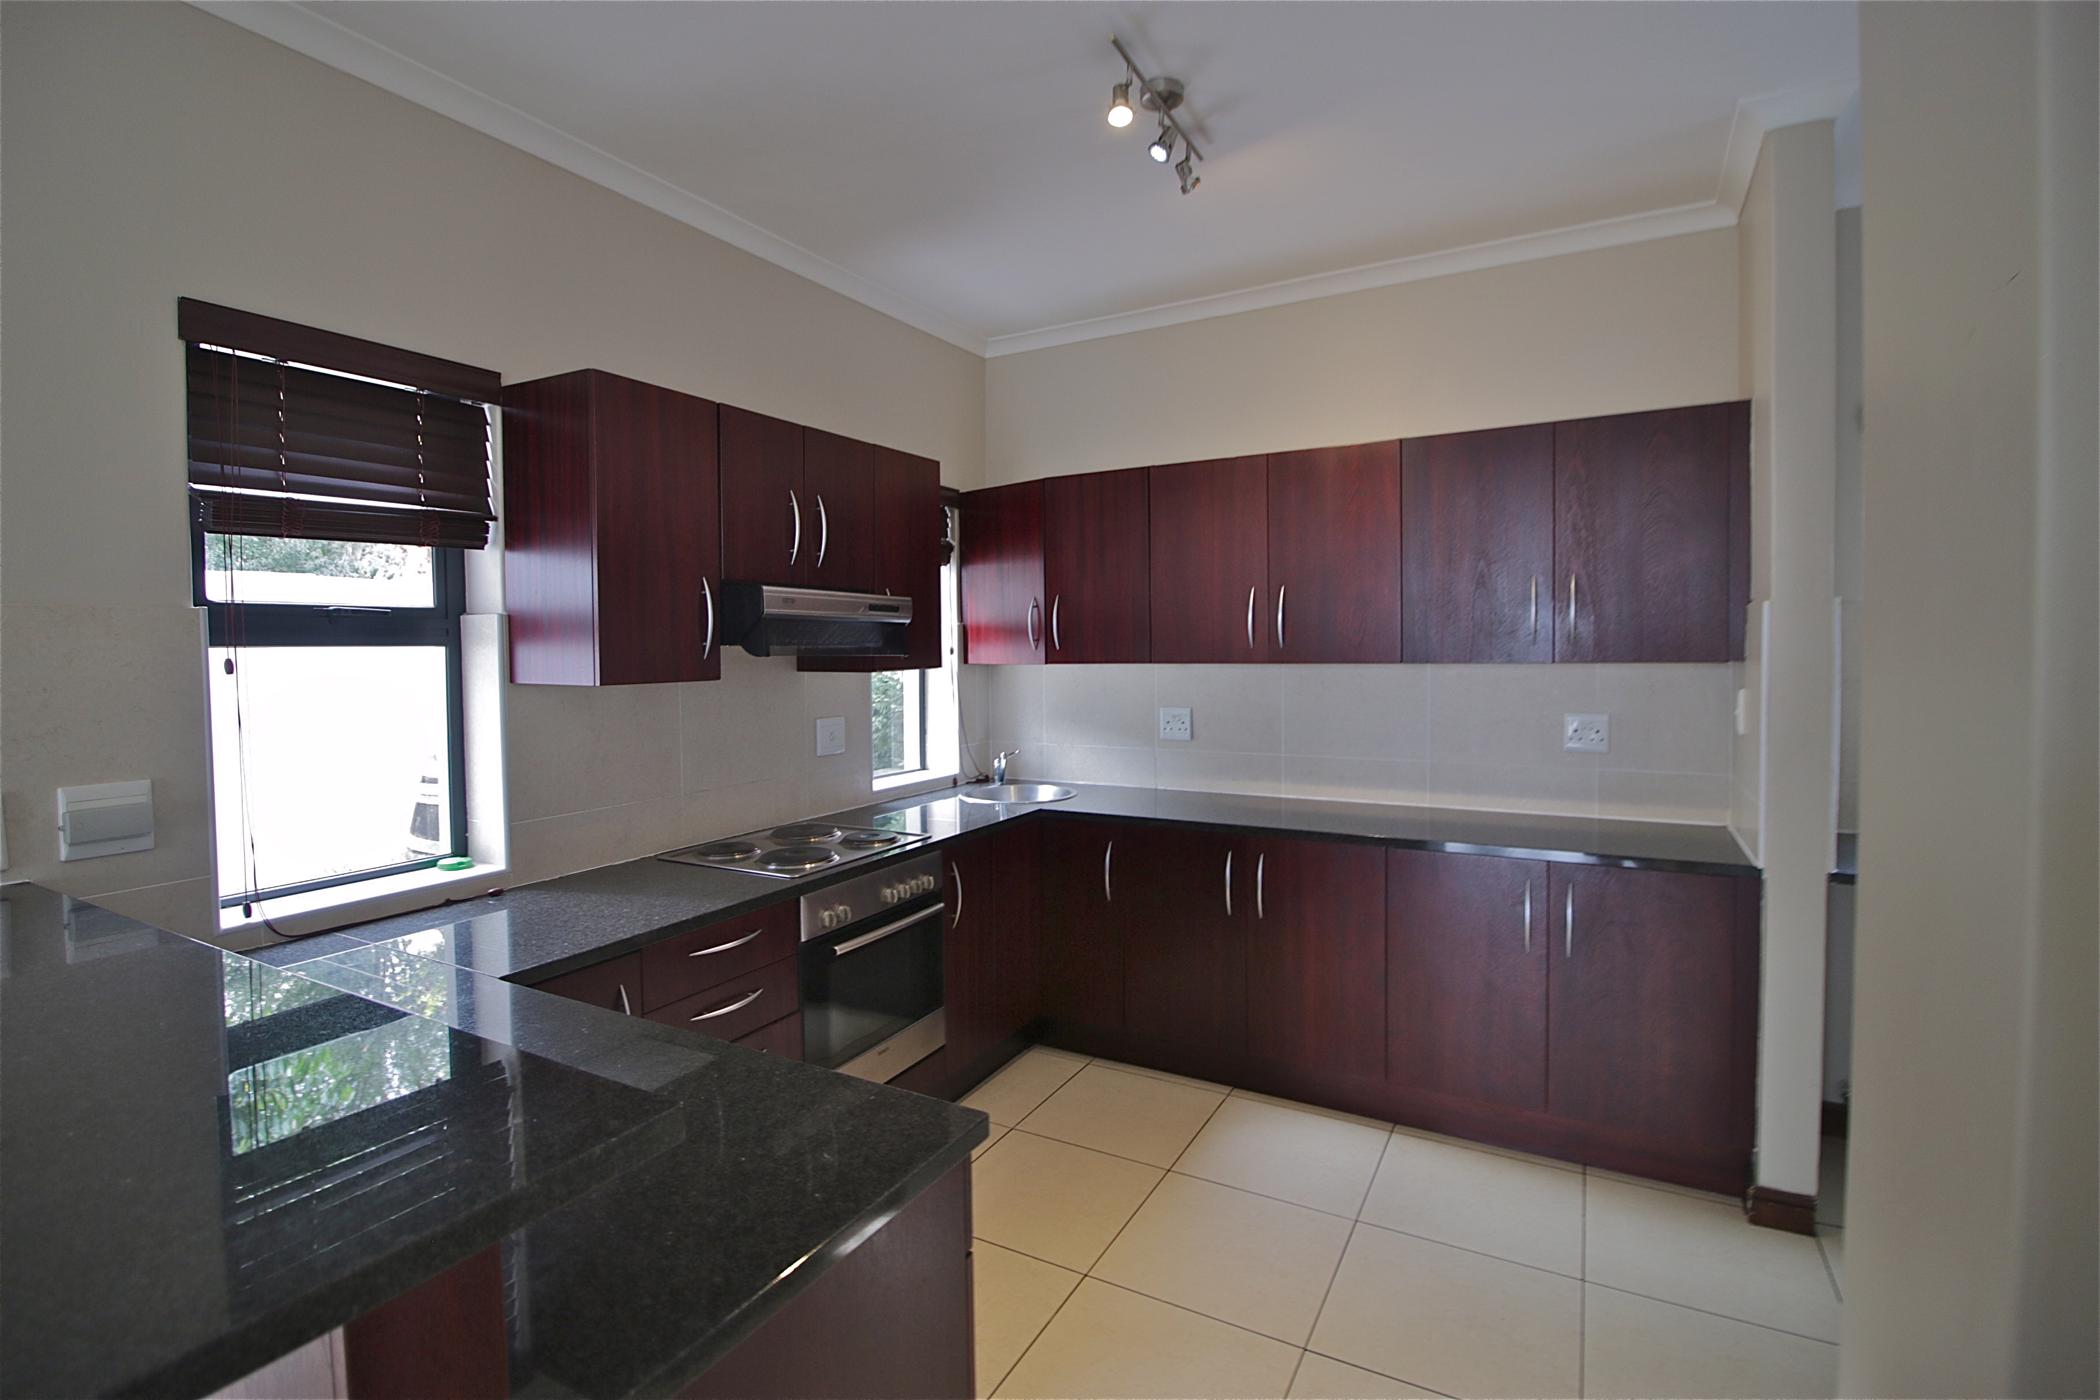 https://listing.pamgolding.co.za/images/properties/201906/1363381/H/1363381_H_16.jpg